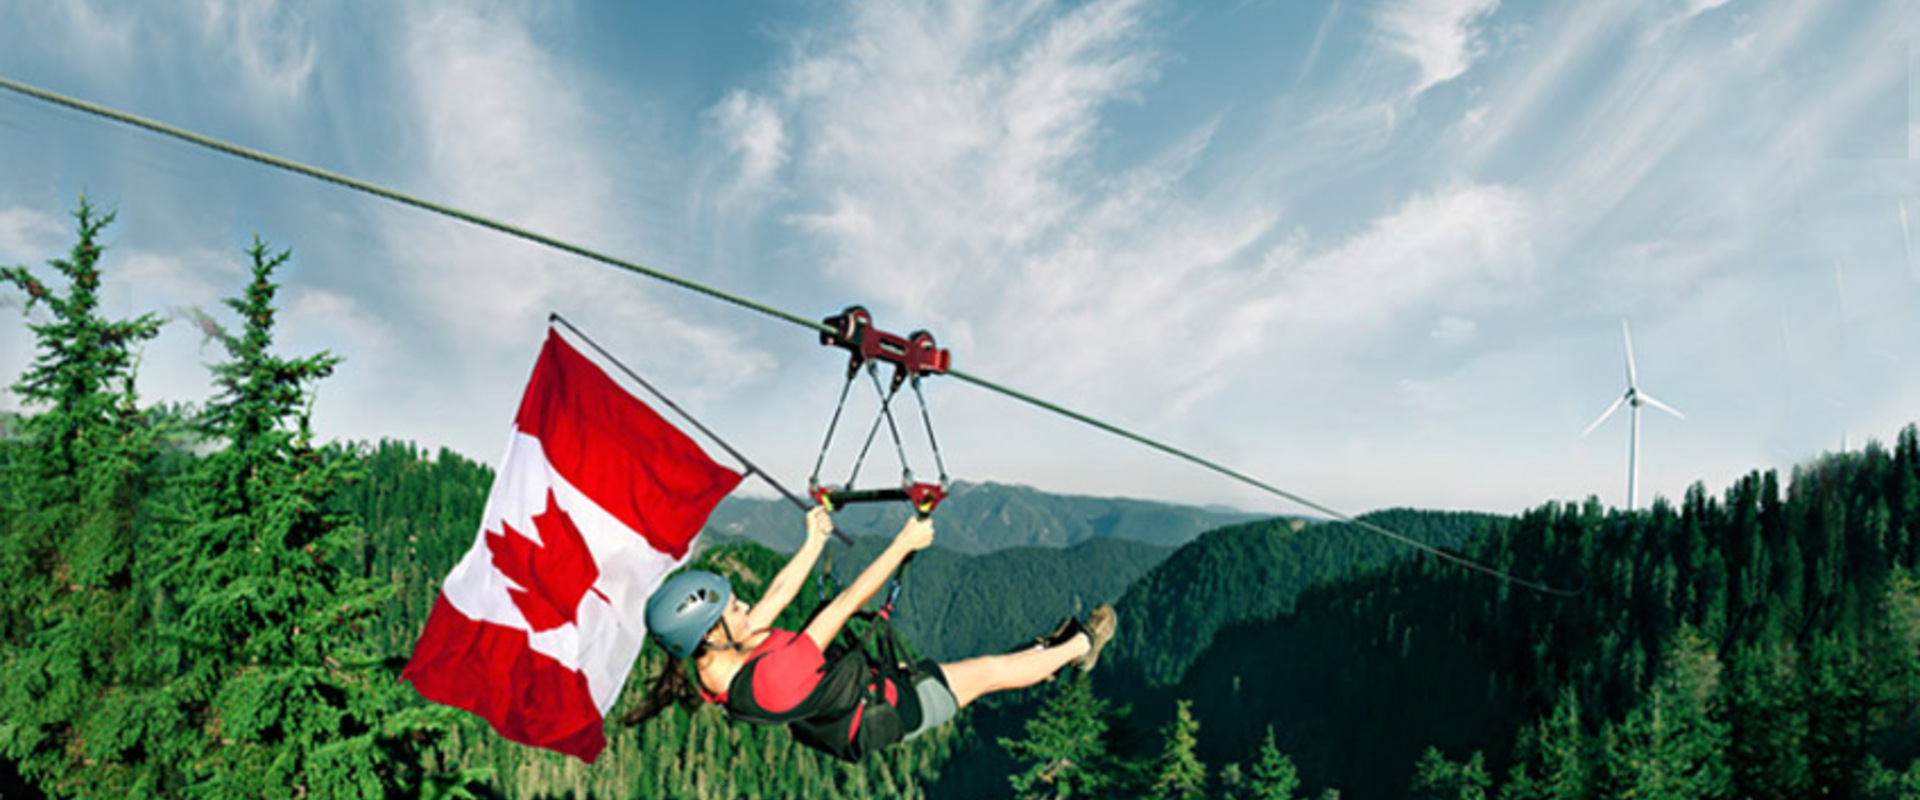 Canada Day 2018 Grouse Mountain The Peak Of Vancouver